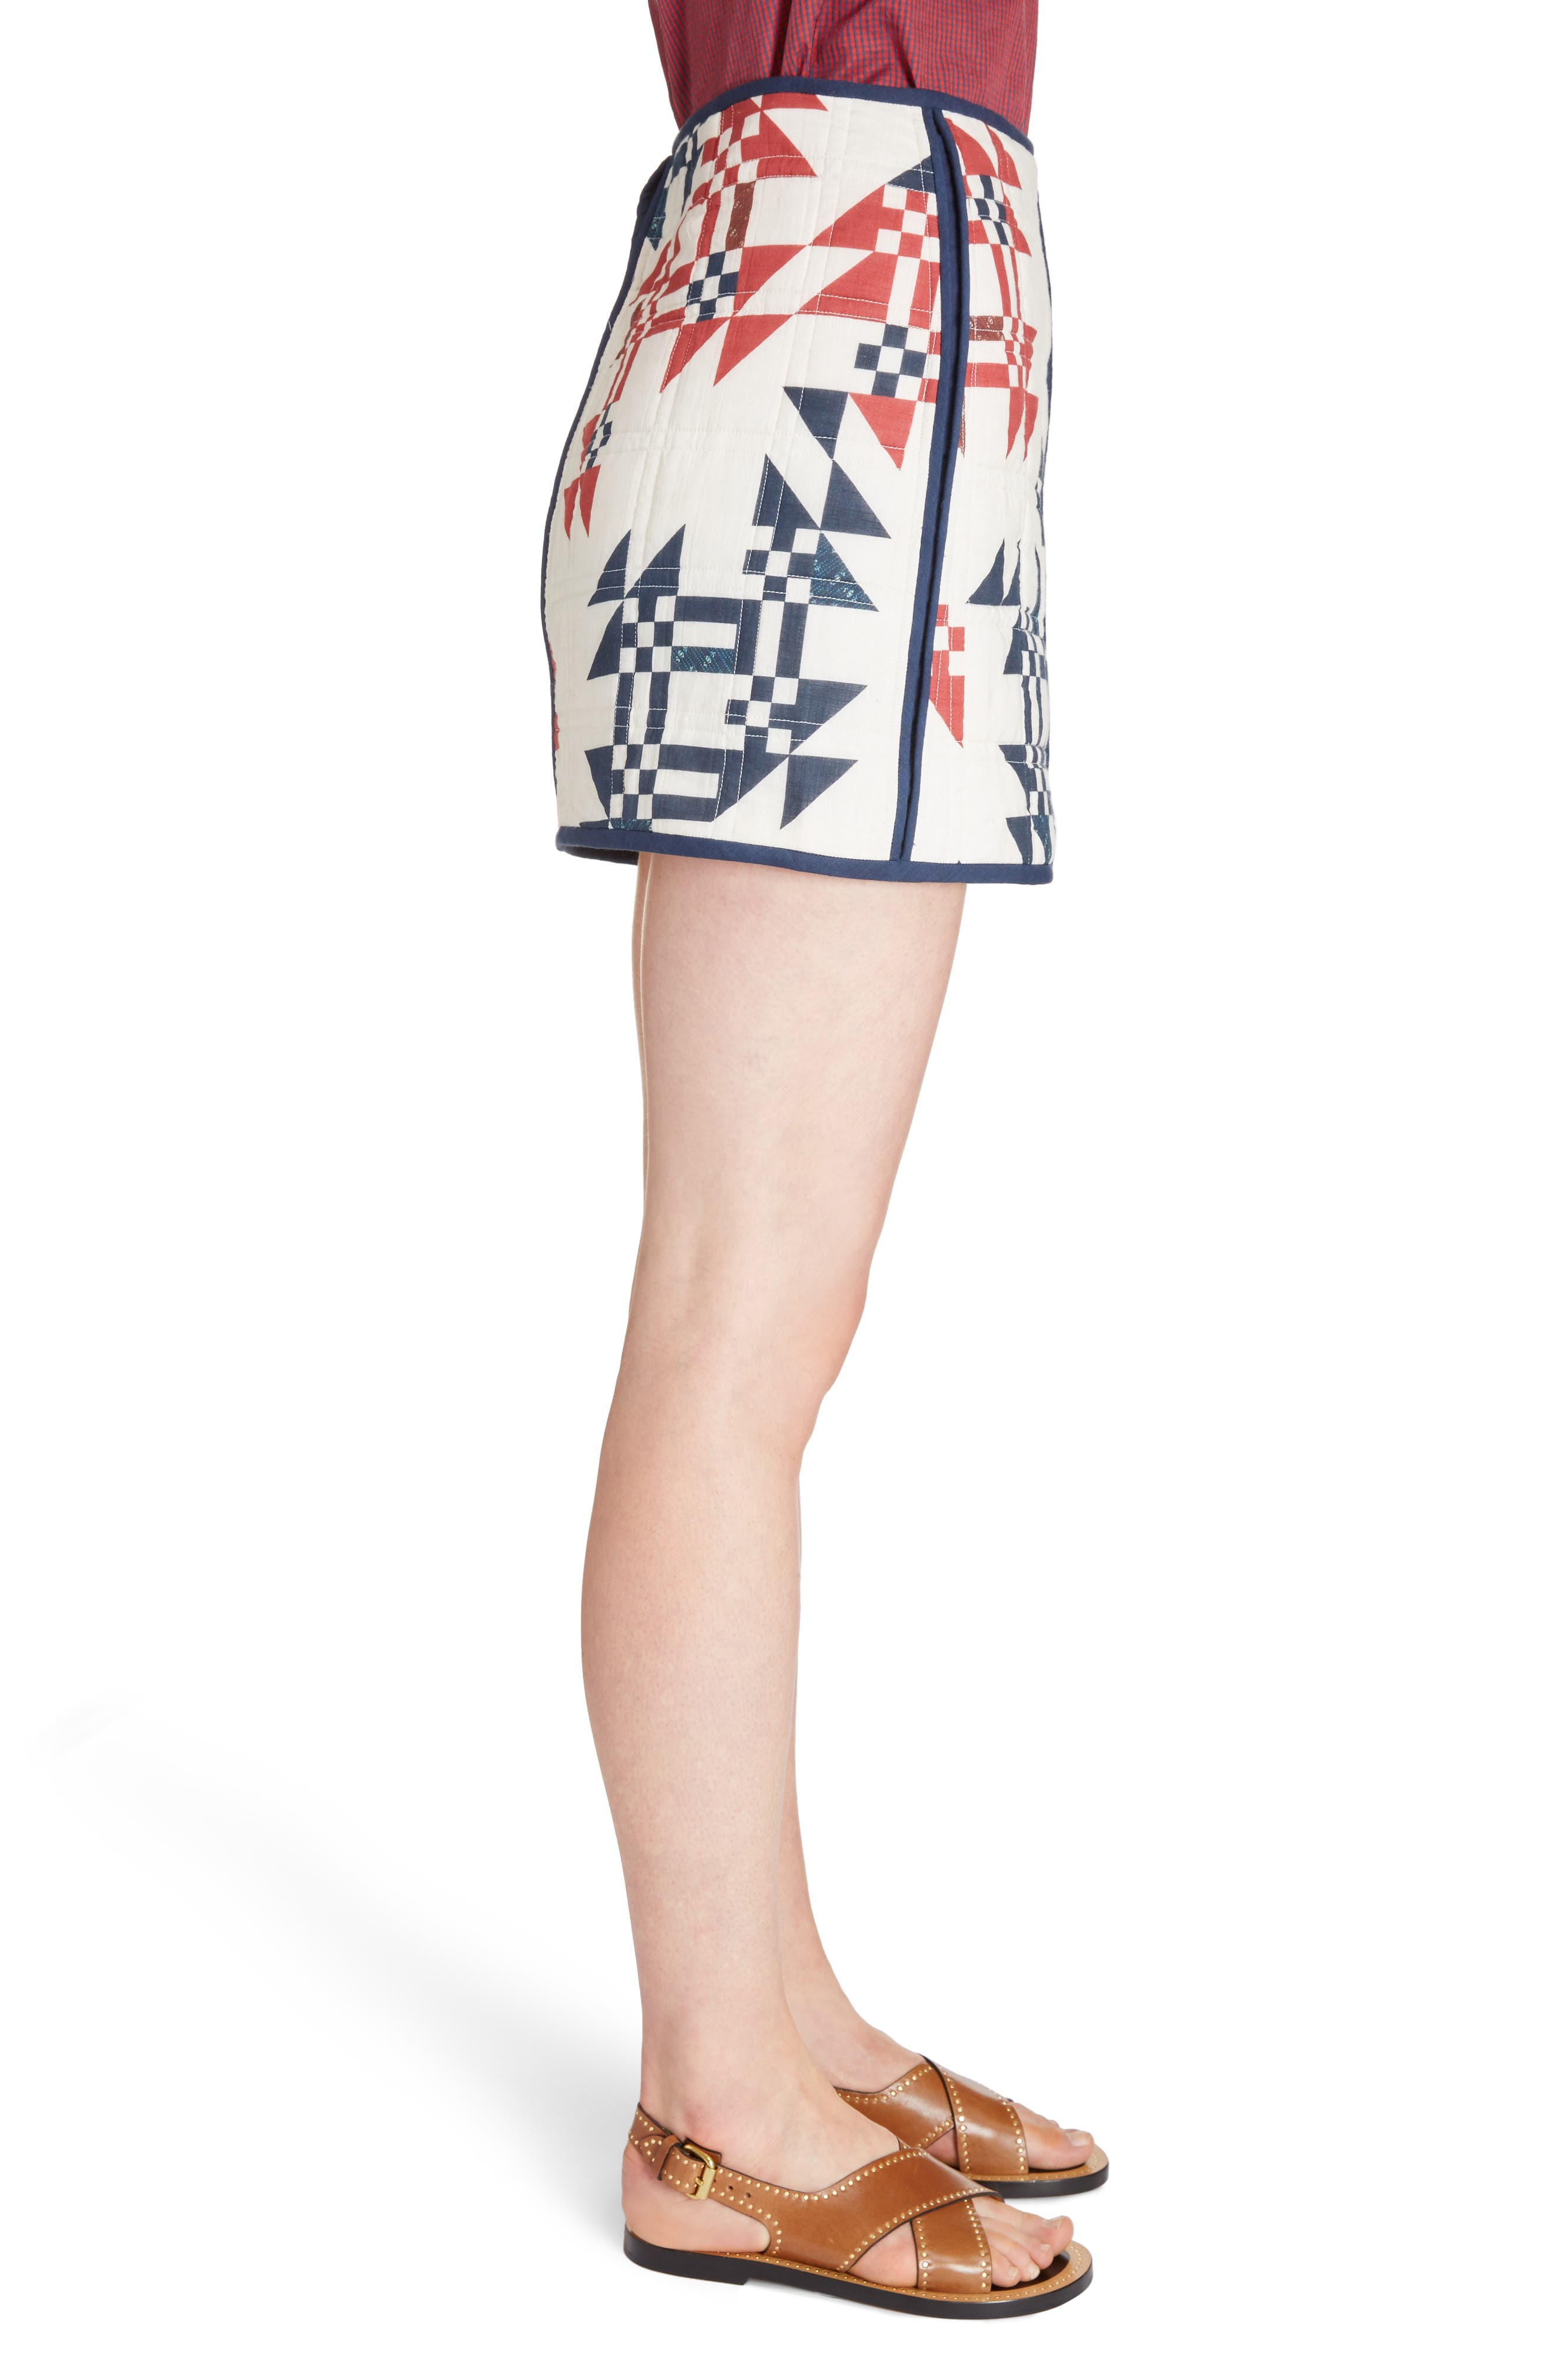 Lickly Origami Quilted Cotton Skirt,                             Alternate thumbnail 3, color,                             Ecru